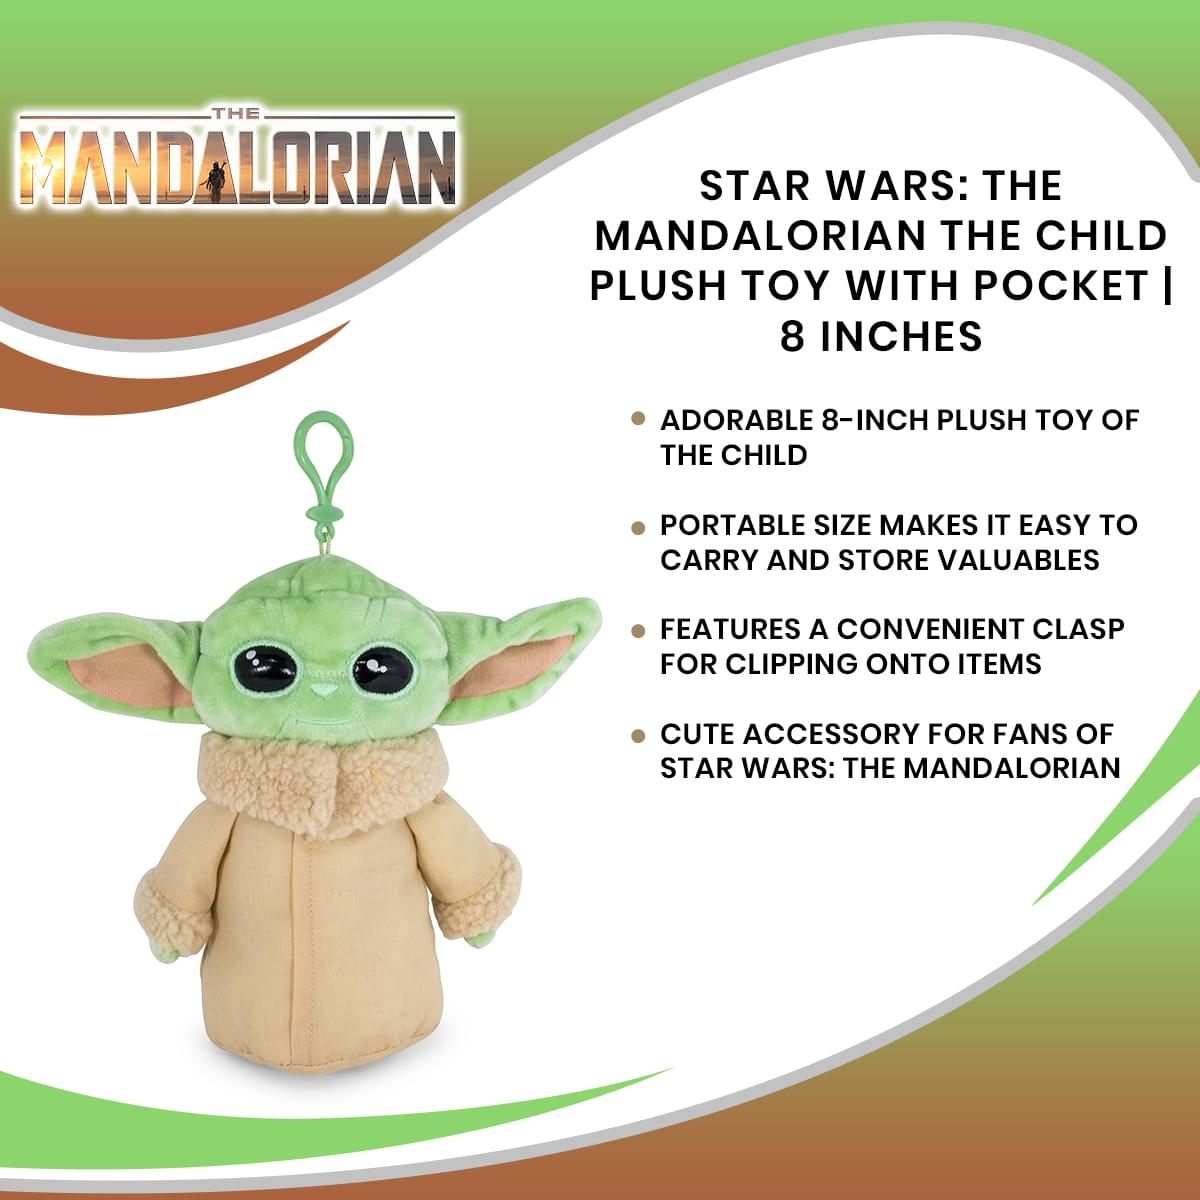 Star Wars: The Mandalorian The Child Plush Toy with Pocket | 8 Inches